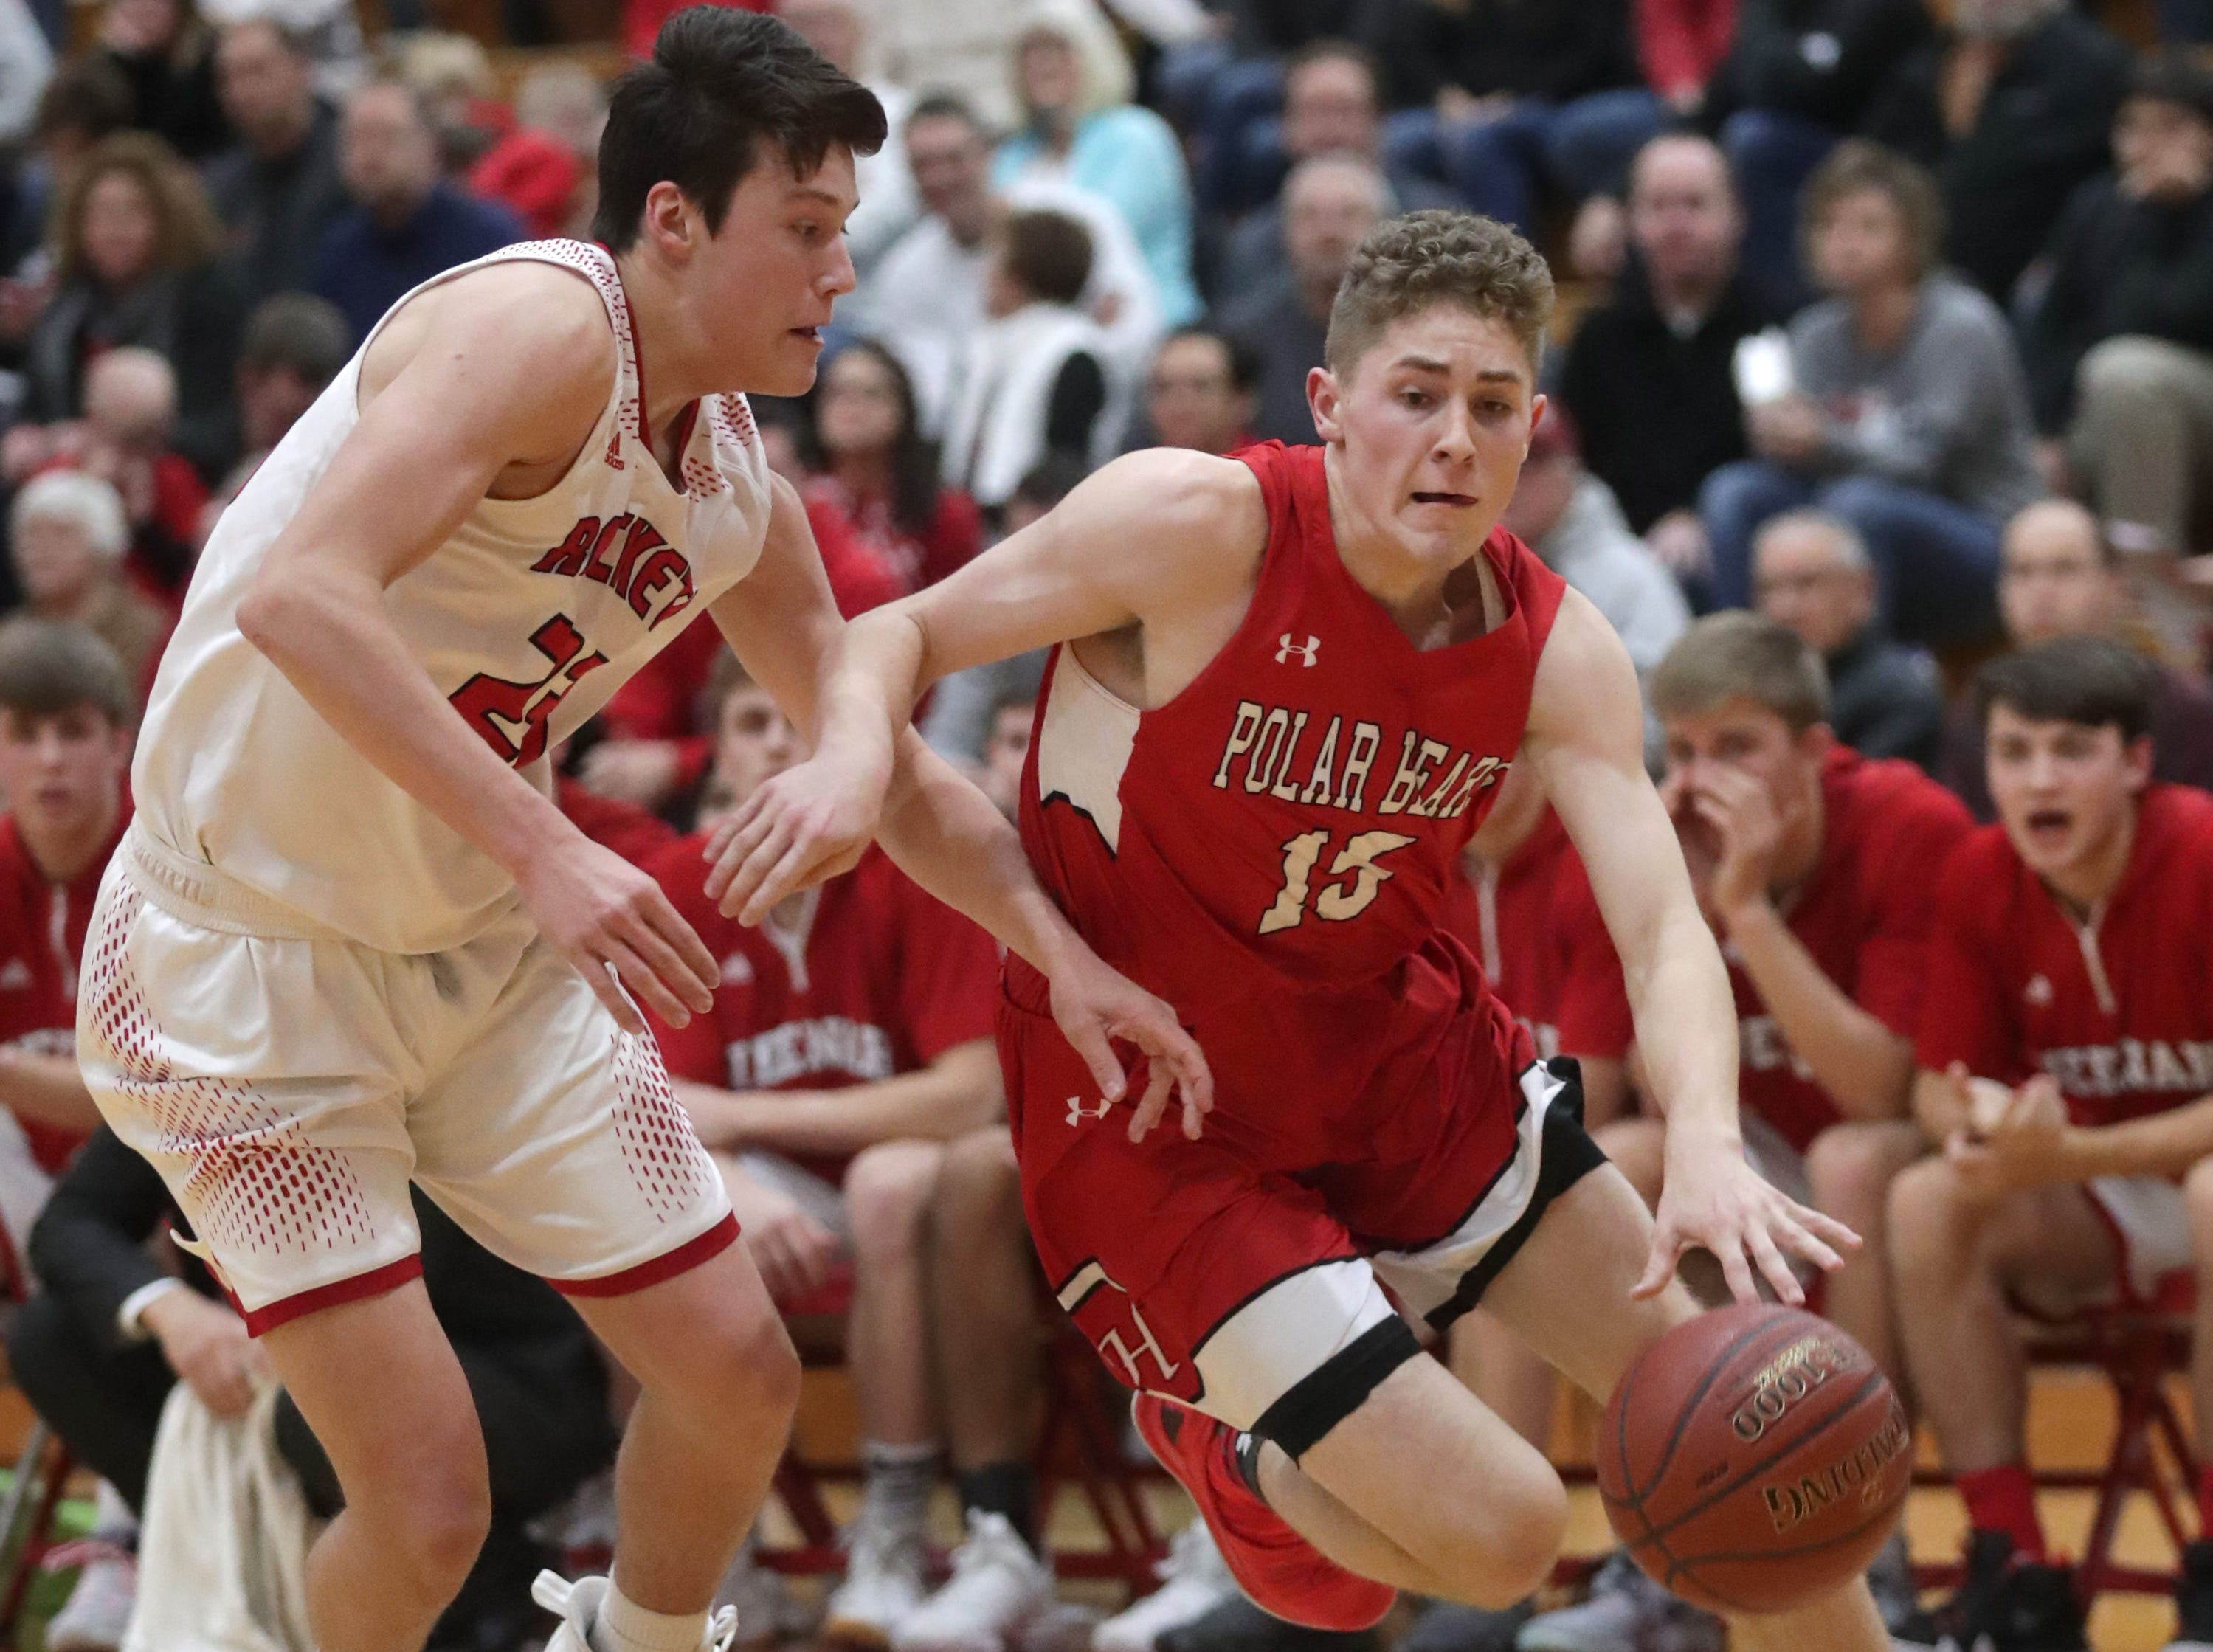 Neenah High School's #23 Ethan Parker against Hortonville High School's #15 Cole Warning during their Fox Valley Association boys basketball game on Friday, November 30, 2018, in Neenah, Wis. Neenah defeated Hortonville 71 to 67 in overtime.Wm. Glasheen/USA TODAY NETWORK-Wisconsin.